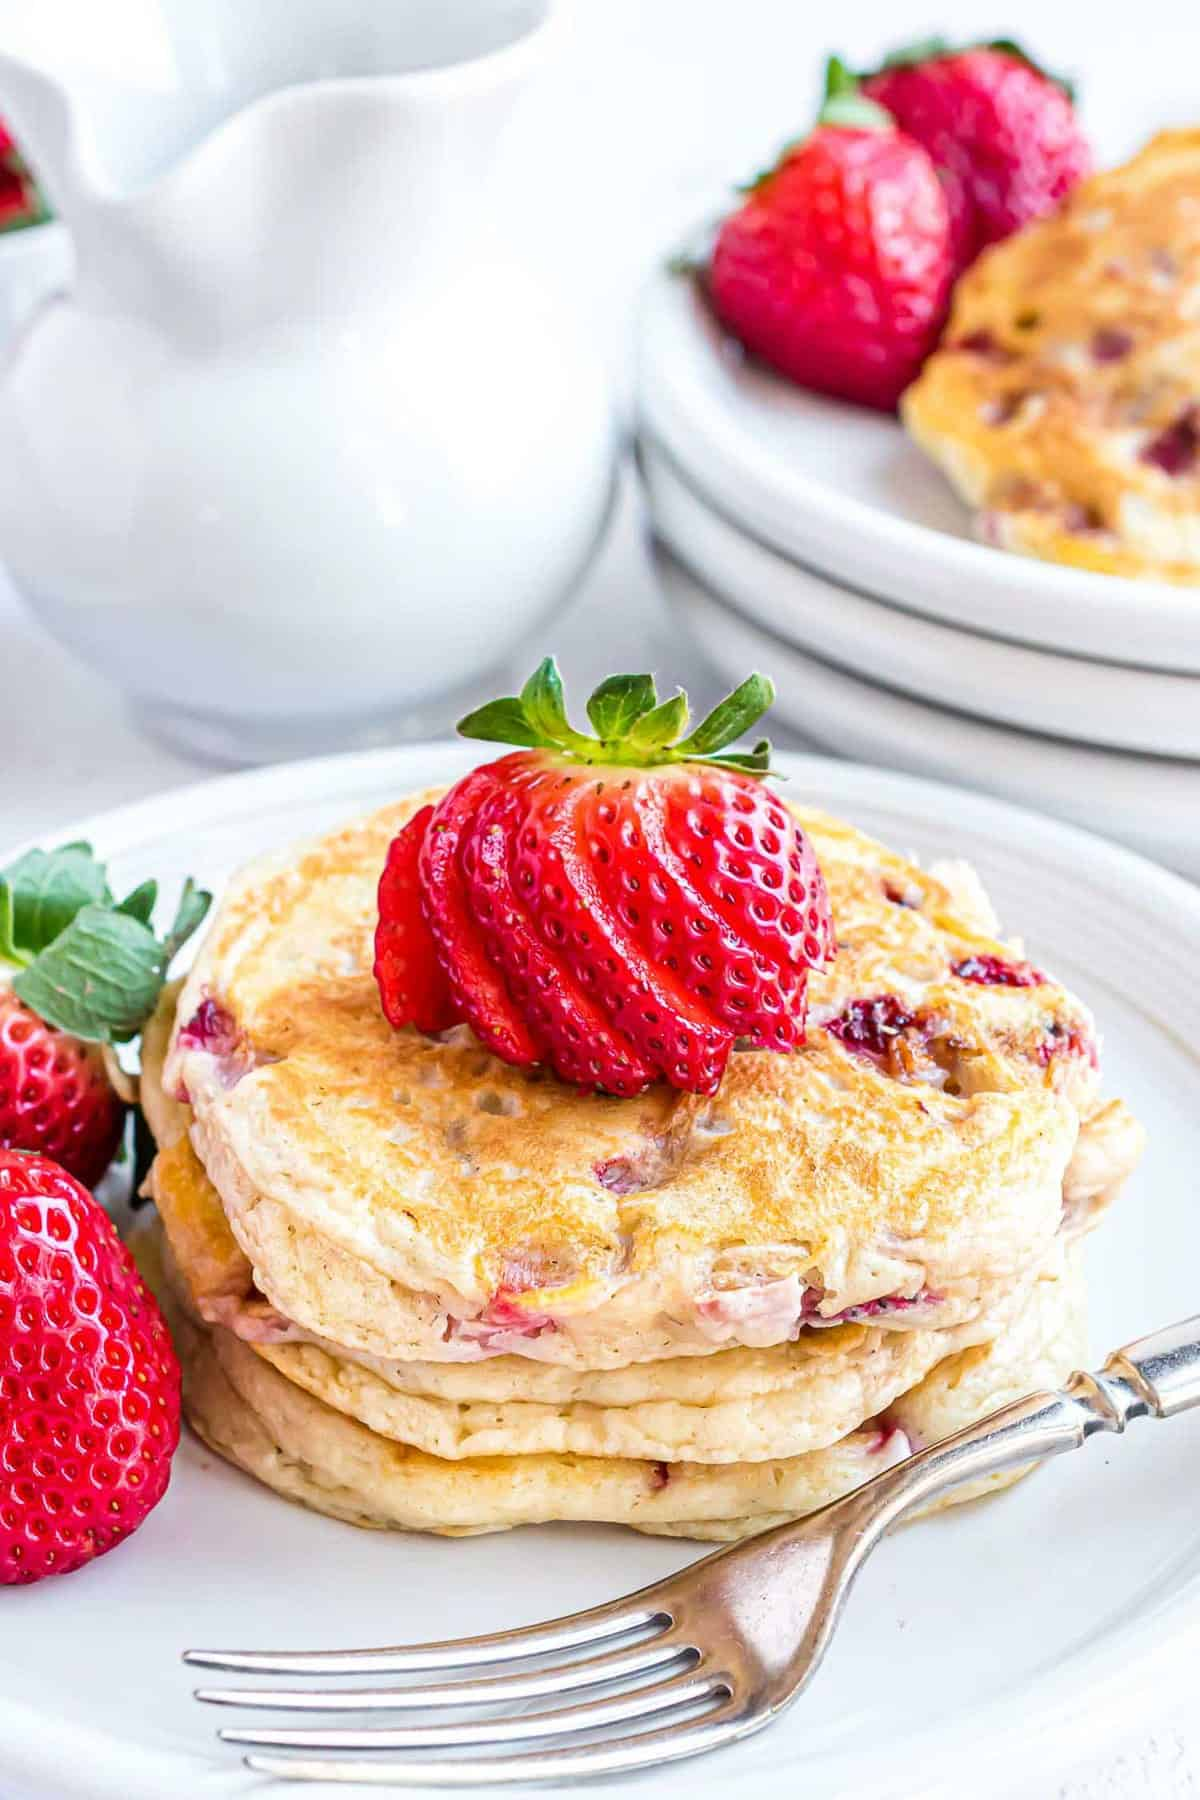 Pancakes topped with a sliced strawberry.